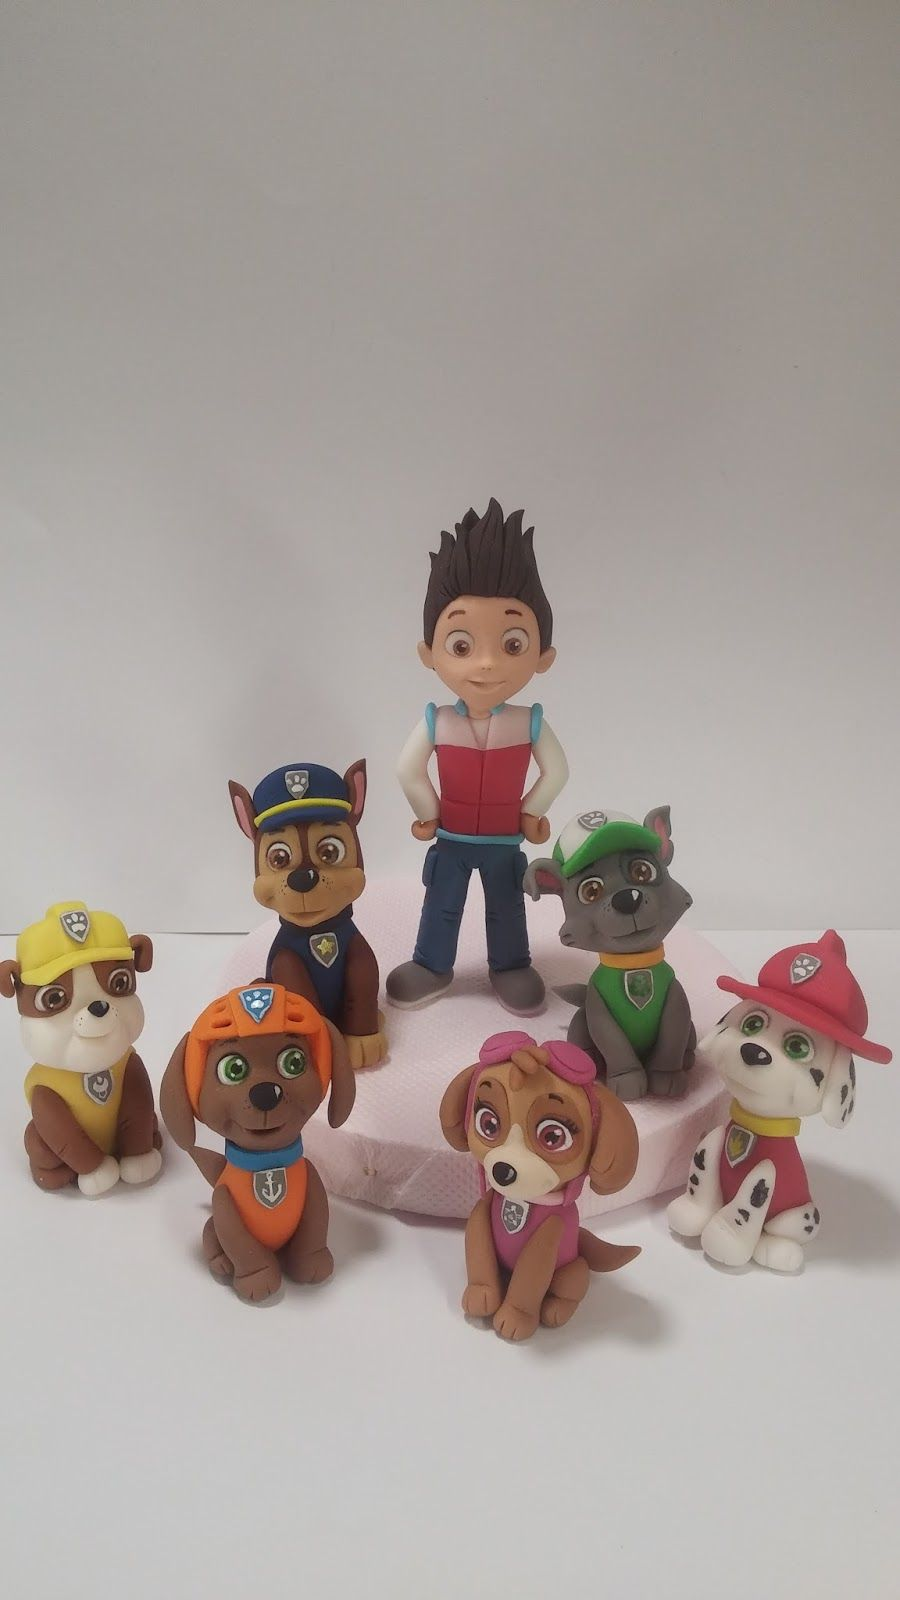 studio fondant design ana figurice za torte fondant figures paw patrol cake pinterest. Black Bedroom Furniture Sets. Home Design Ideas